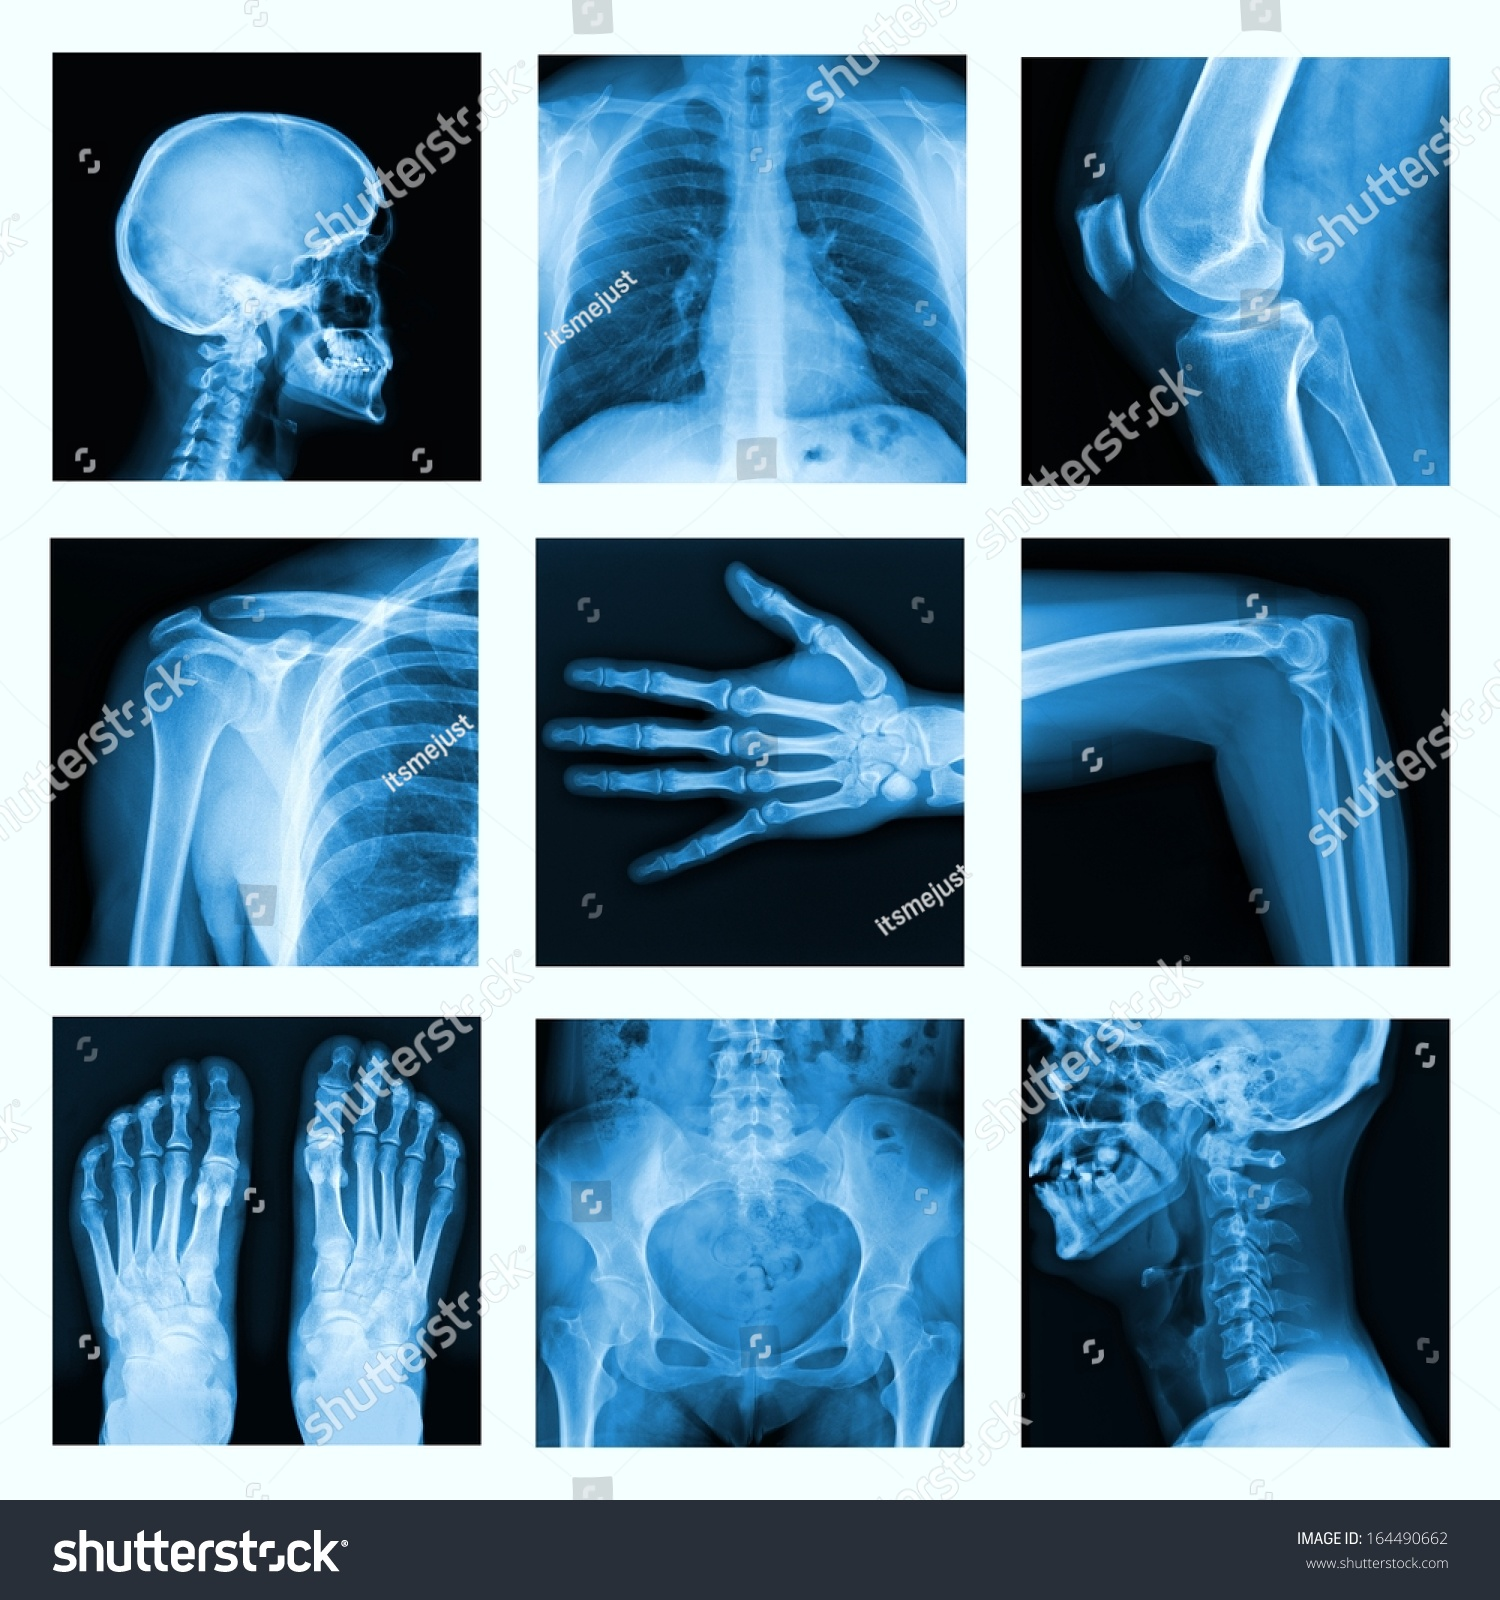 Collage Many Xrays Very Good Quality Stock Photo